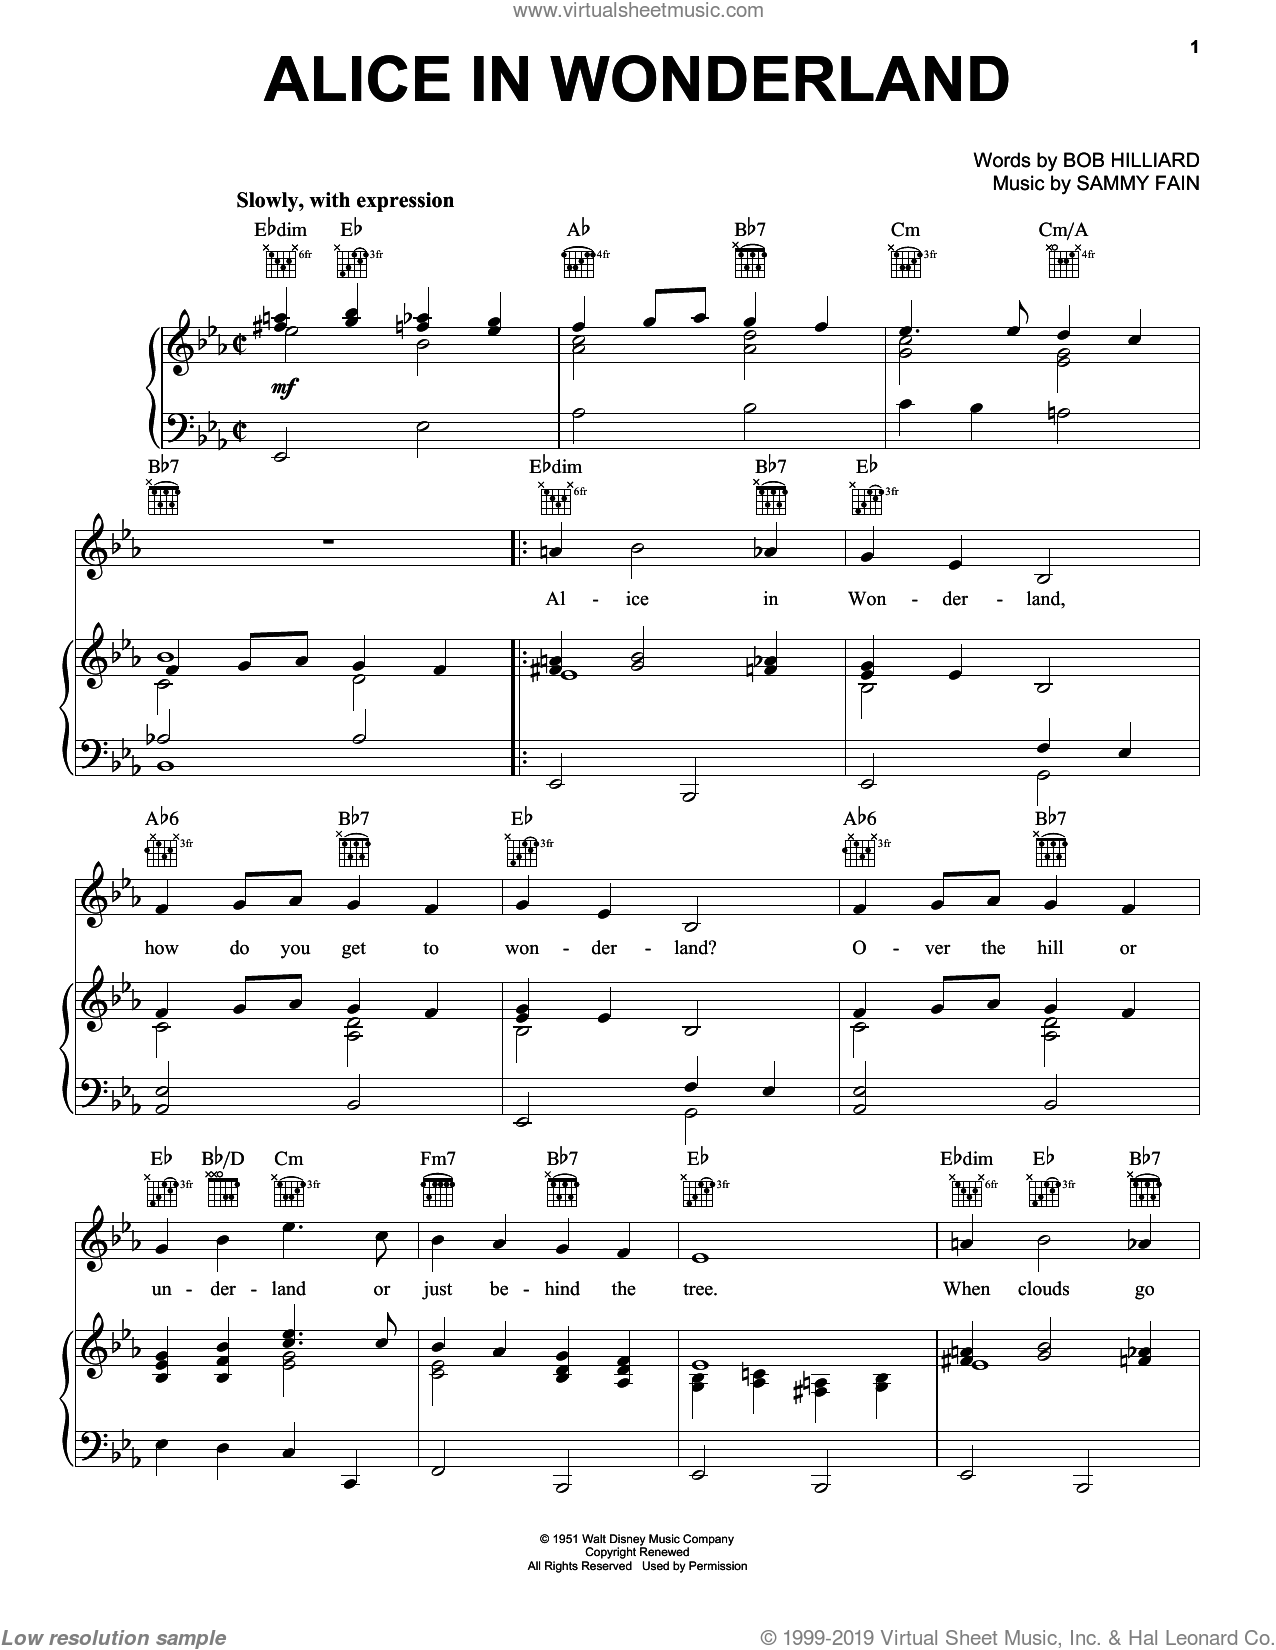 Alice In Wonderland sheet music for voice, piano or guitar by Bill Evans, Bob Hilliard and Sammy Fain, intermediate skill level